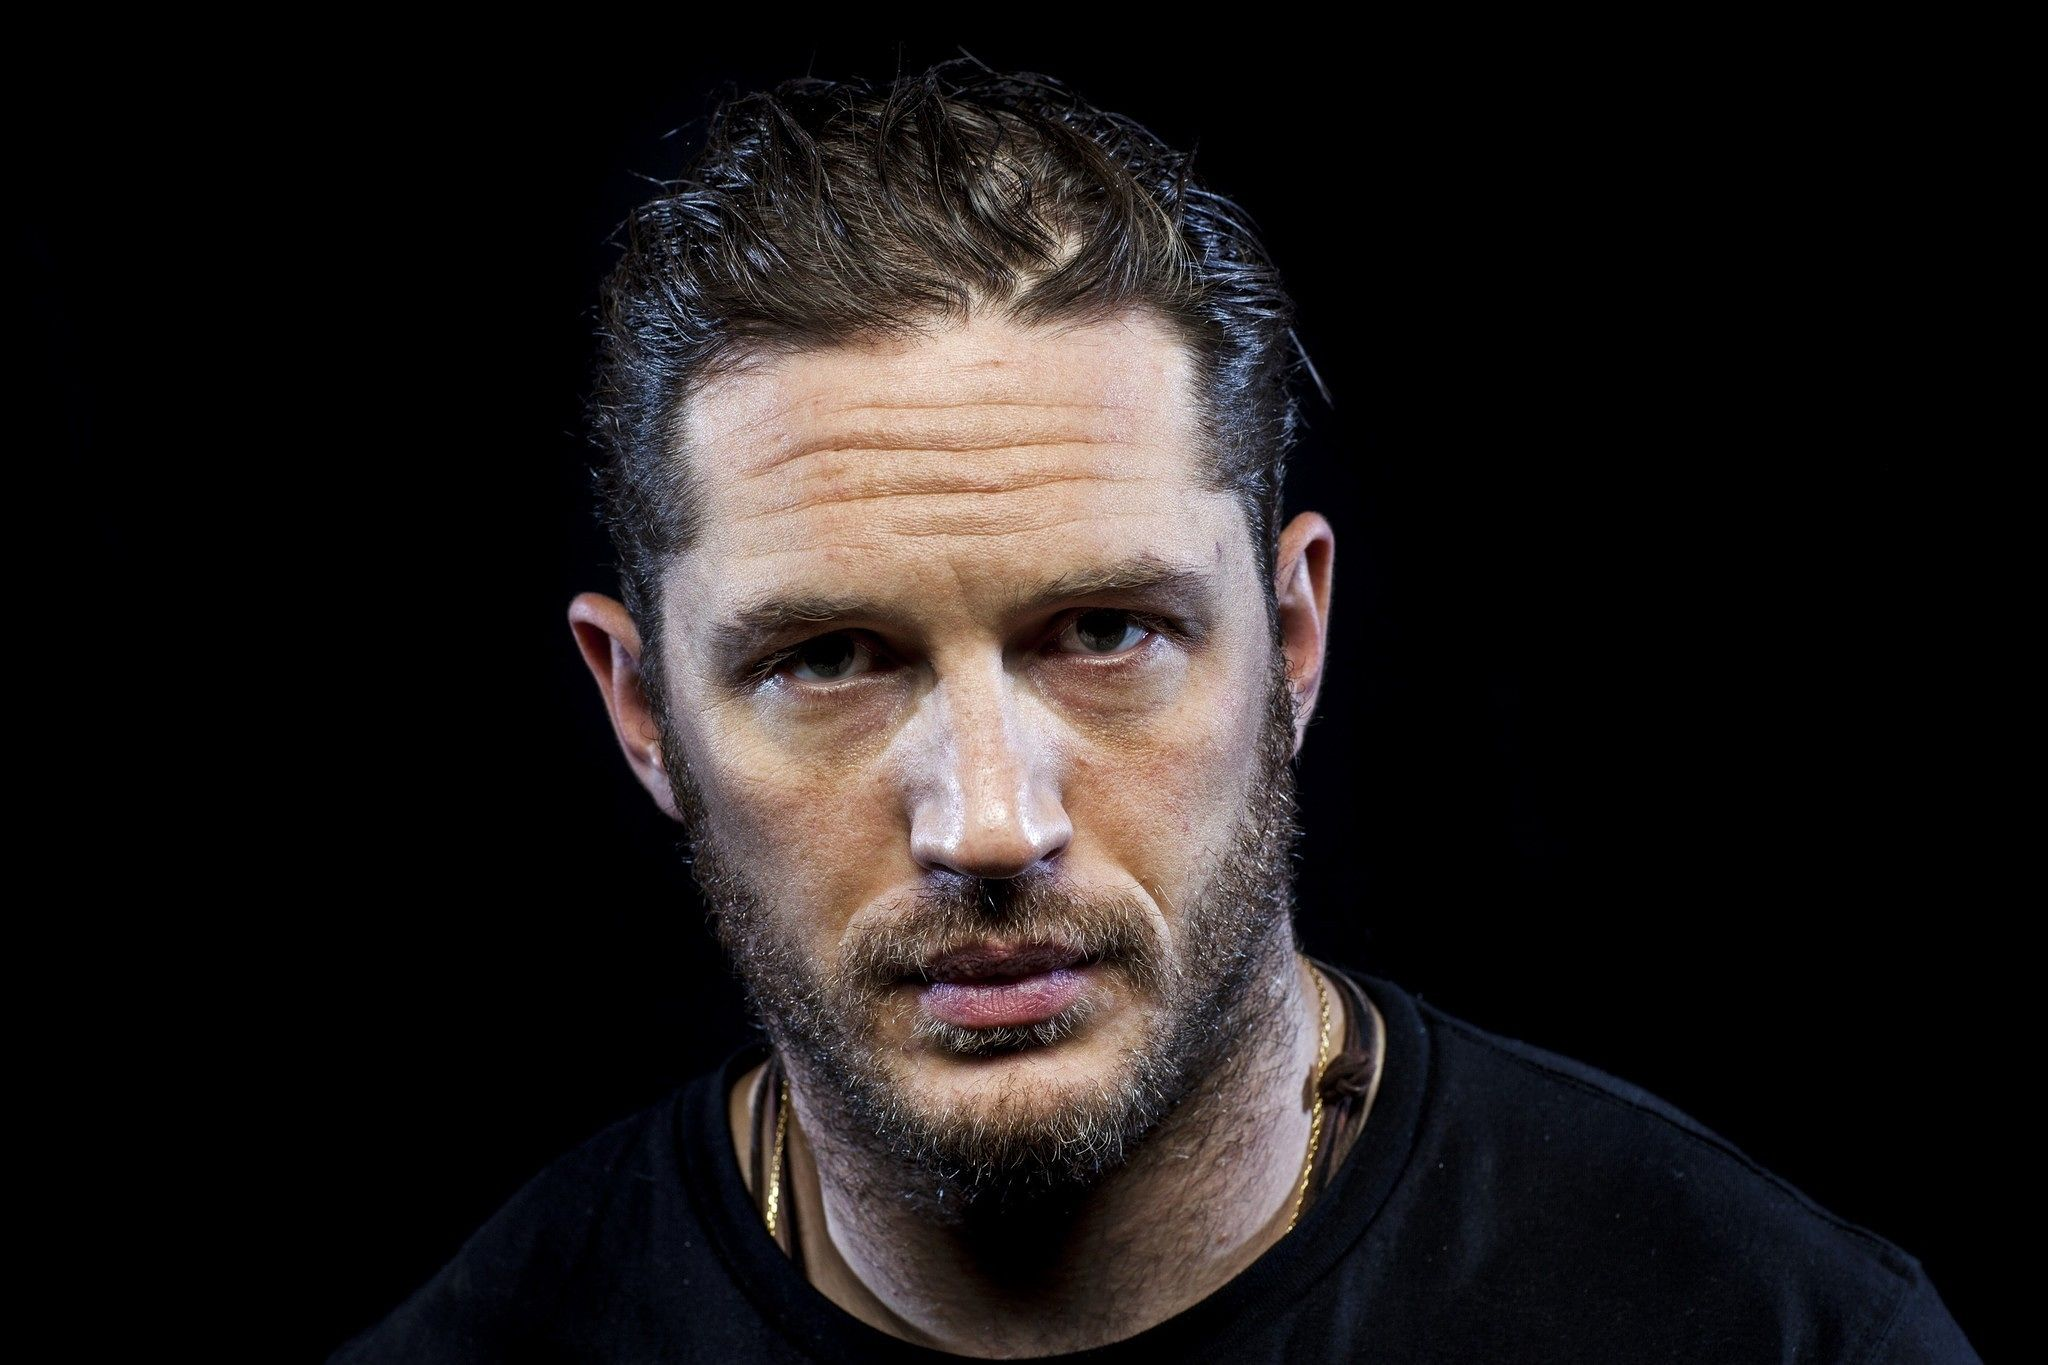 Tom Hardy Wallpapers High Resolution and Quality Download 2048x1365